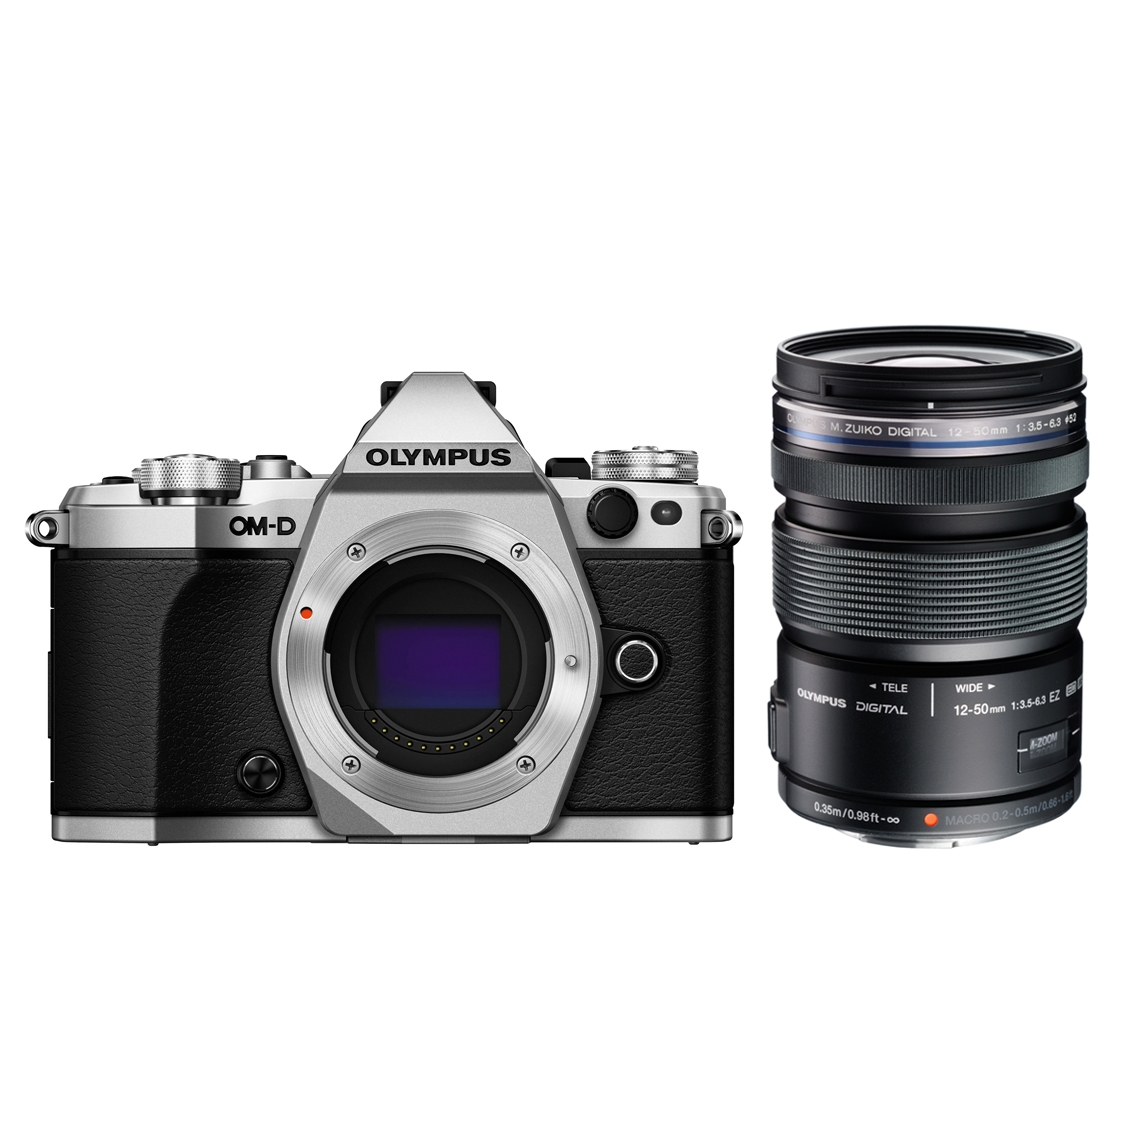 Olympus OM-D E-M5 Mark II (silver) and 12-50mm Lens